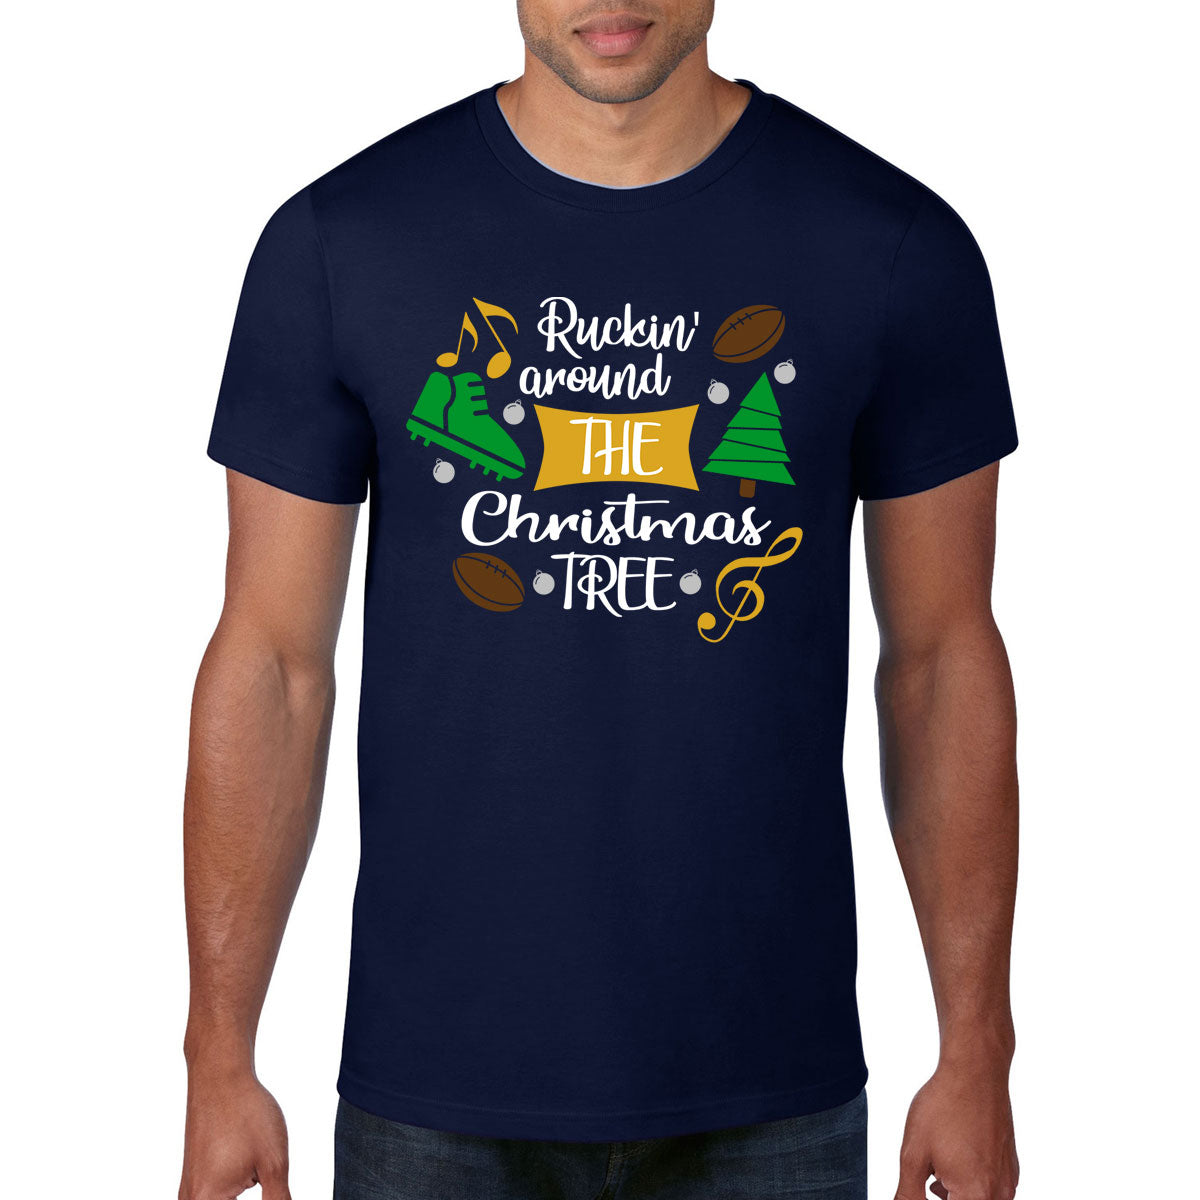 Ruckin' Around The Christmas Tree Rugby Tee - First XV rugbystuff.com